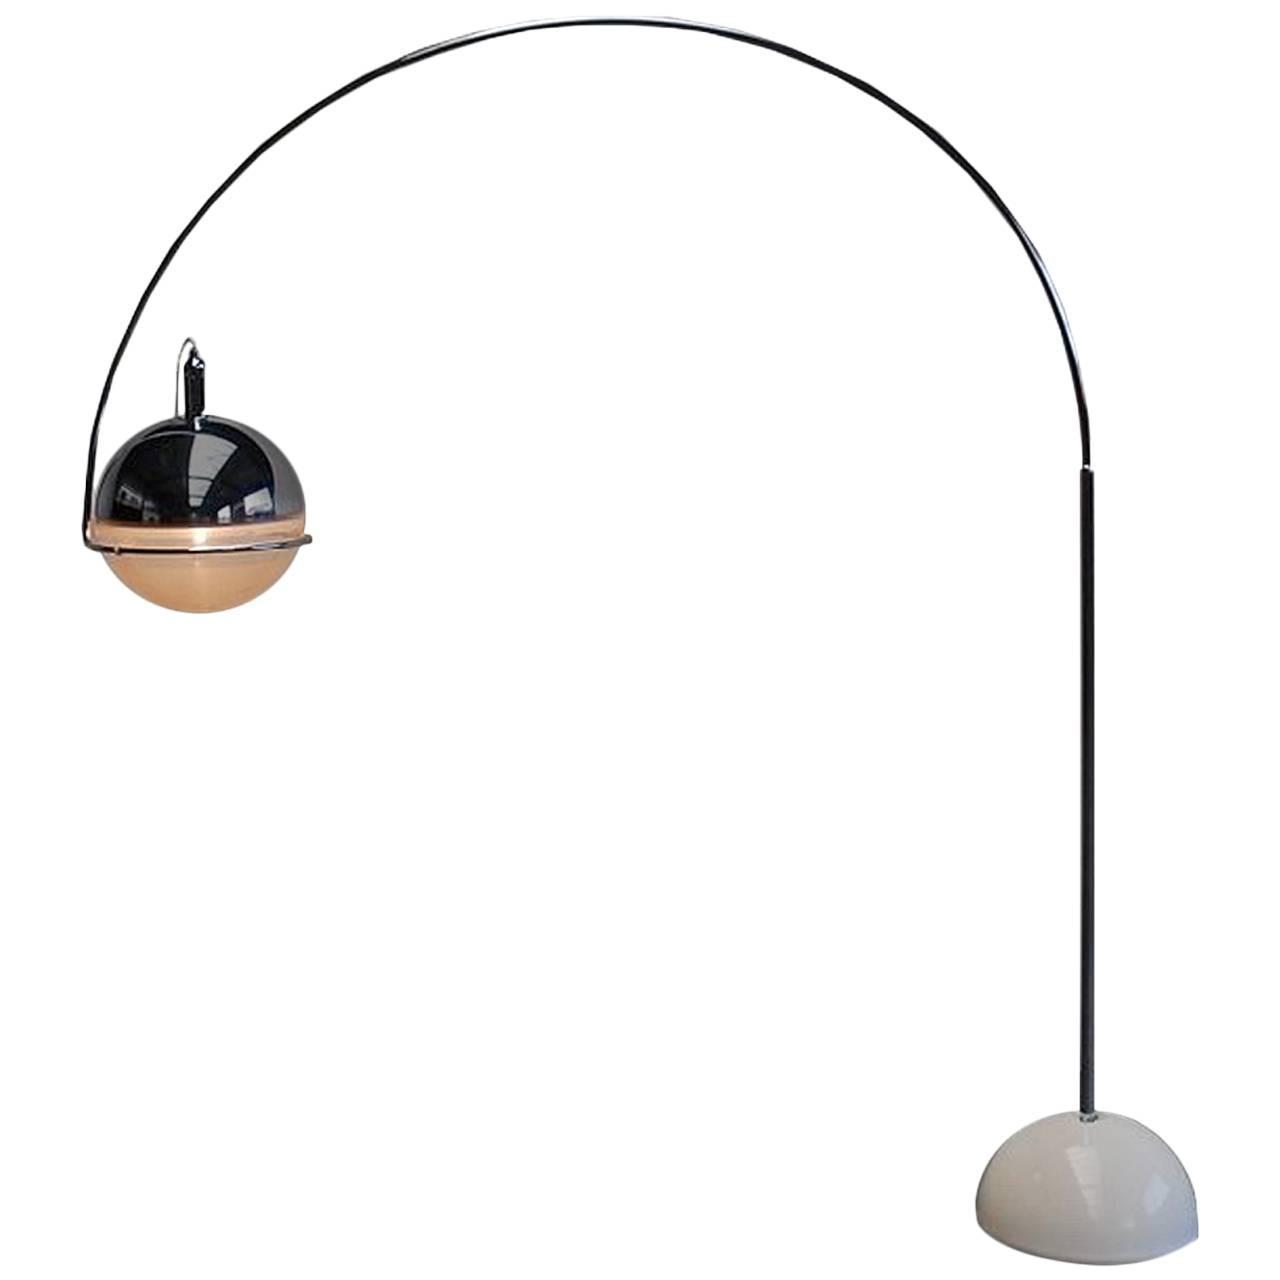 Arc Lamp By Fabio Lenci Italy Circa 1960 For Sale At 1stdibs